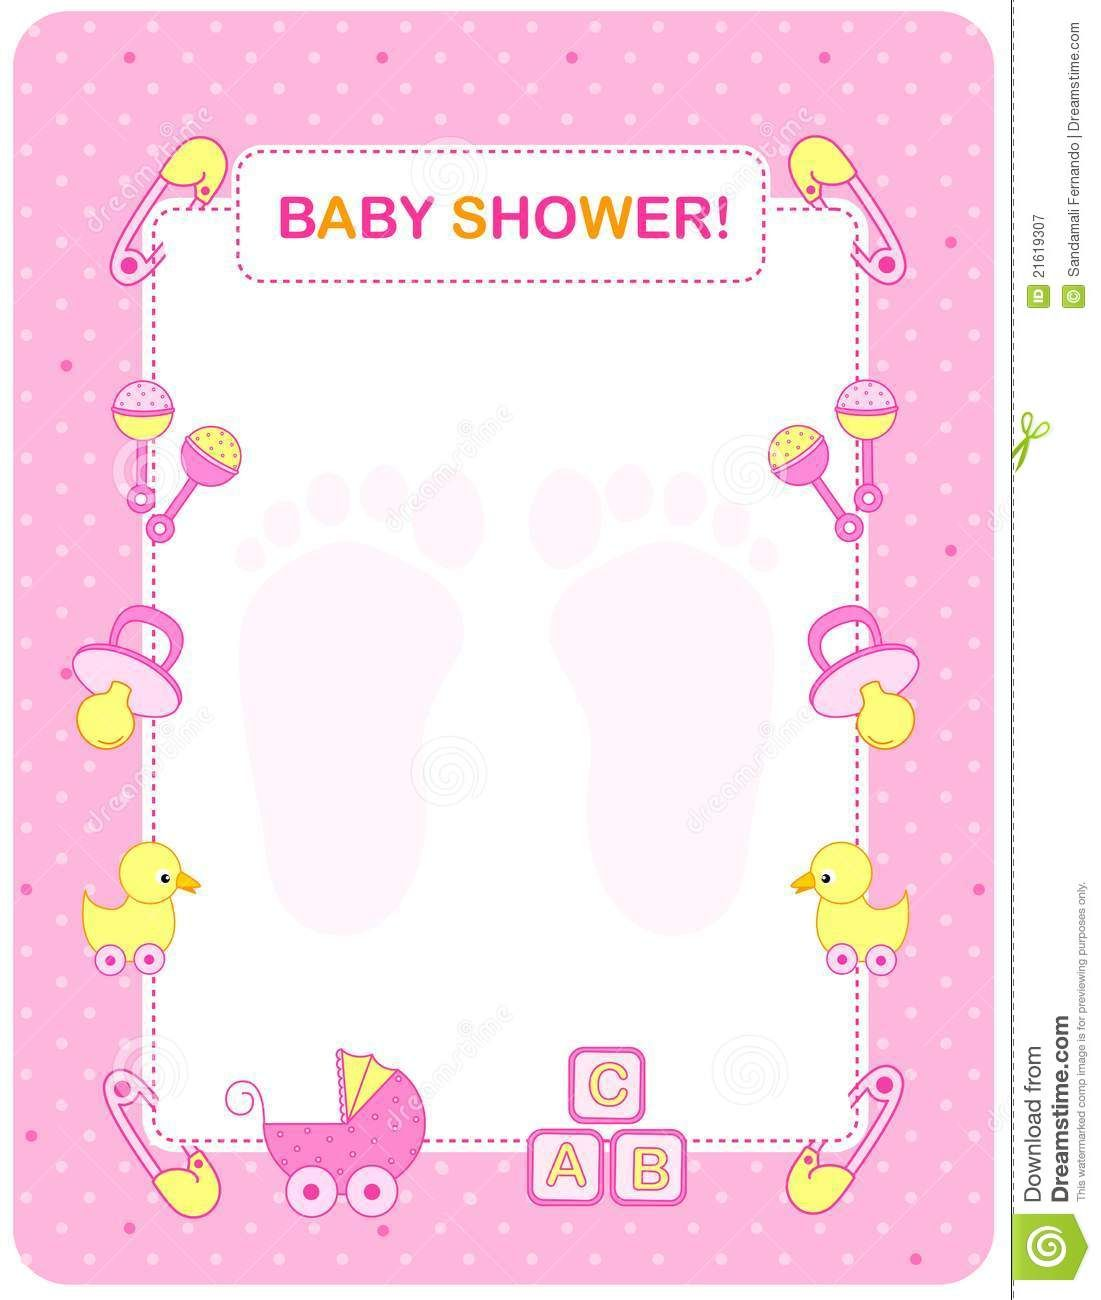 Baby Shower Cards | Baby Shower | Pinterest | Babyshower